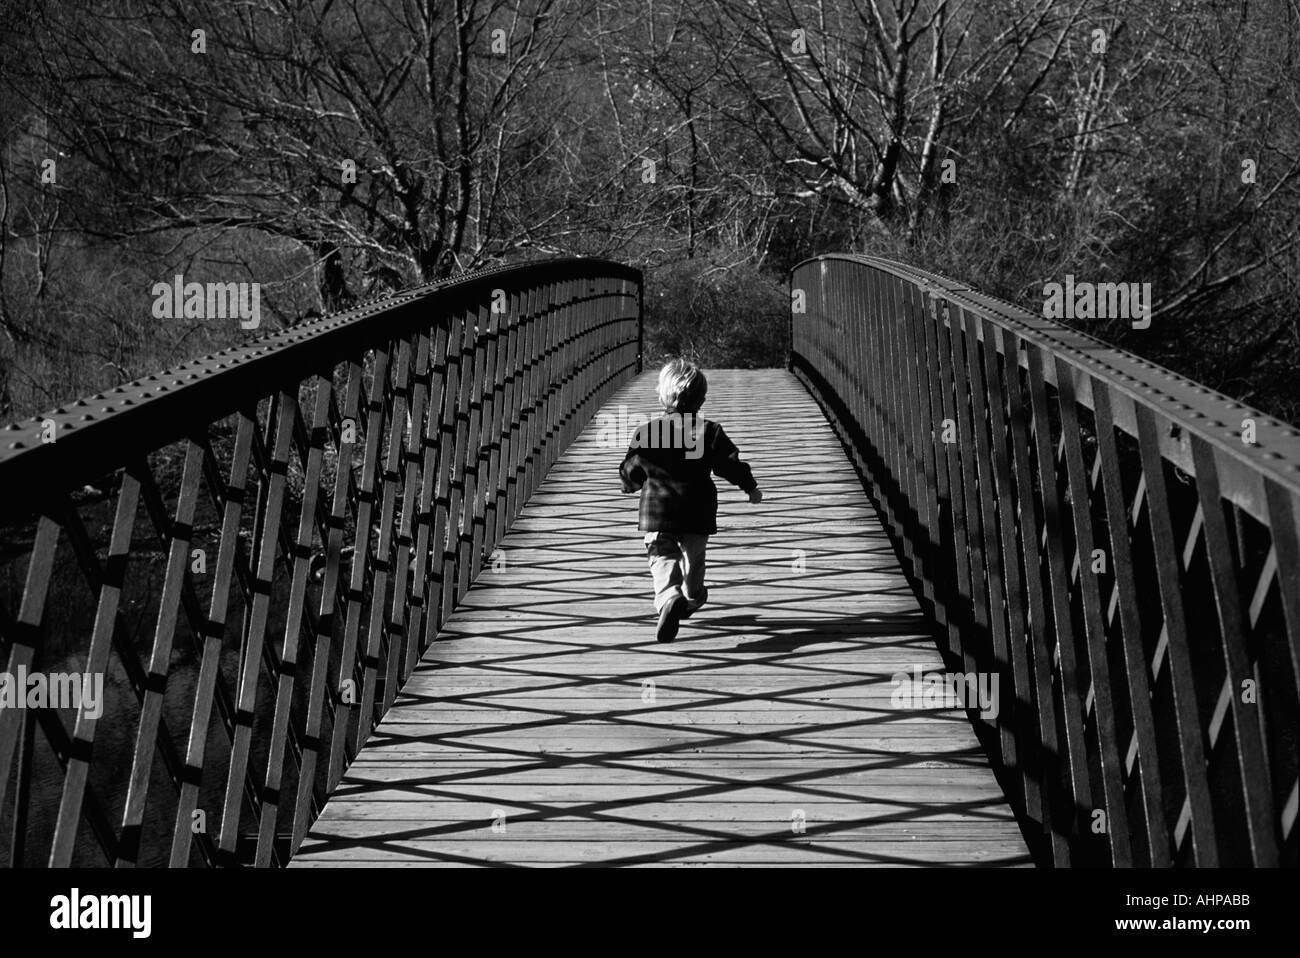 Boy running across bridge black and white - Stock Image